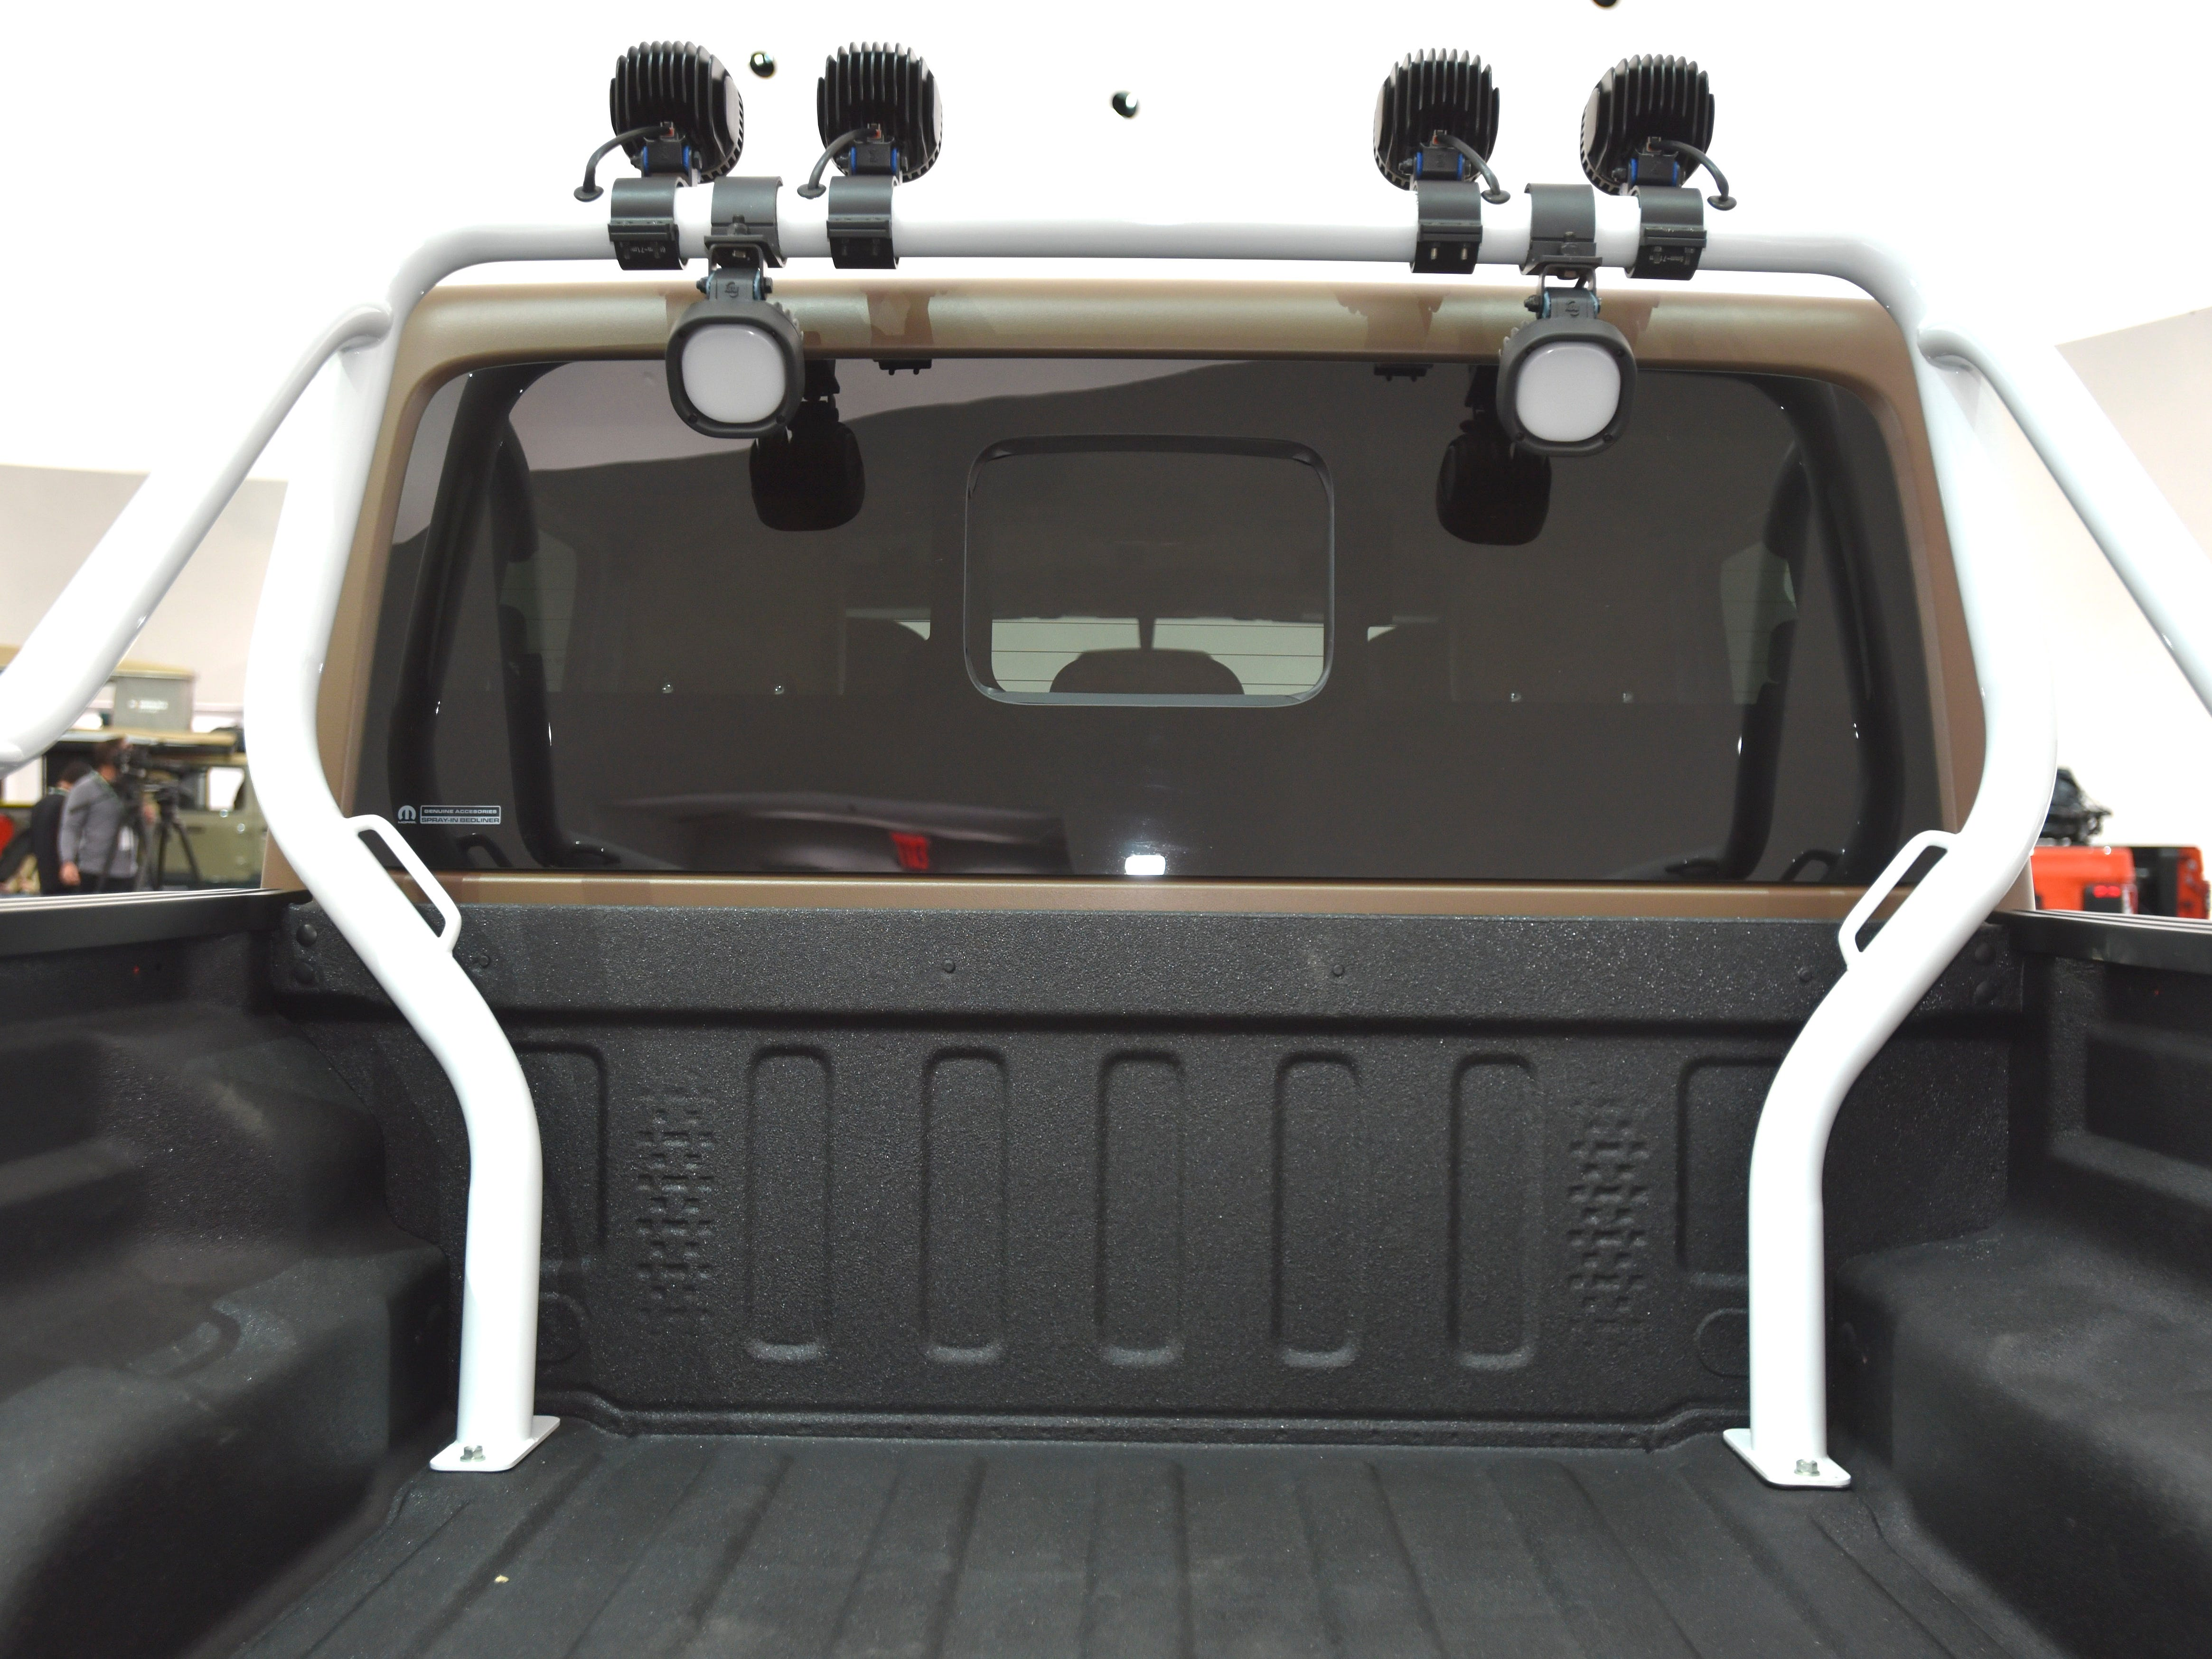 This is a roll bar in the bed of the Jeep JT Scrambler.